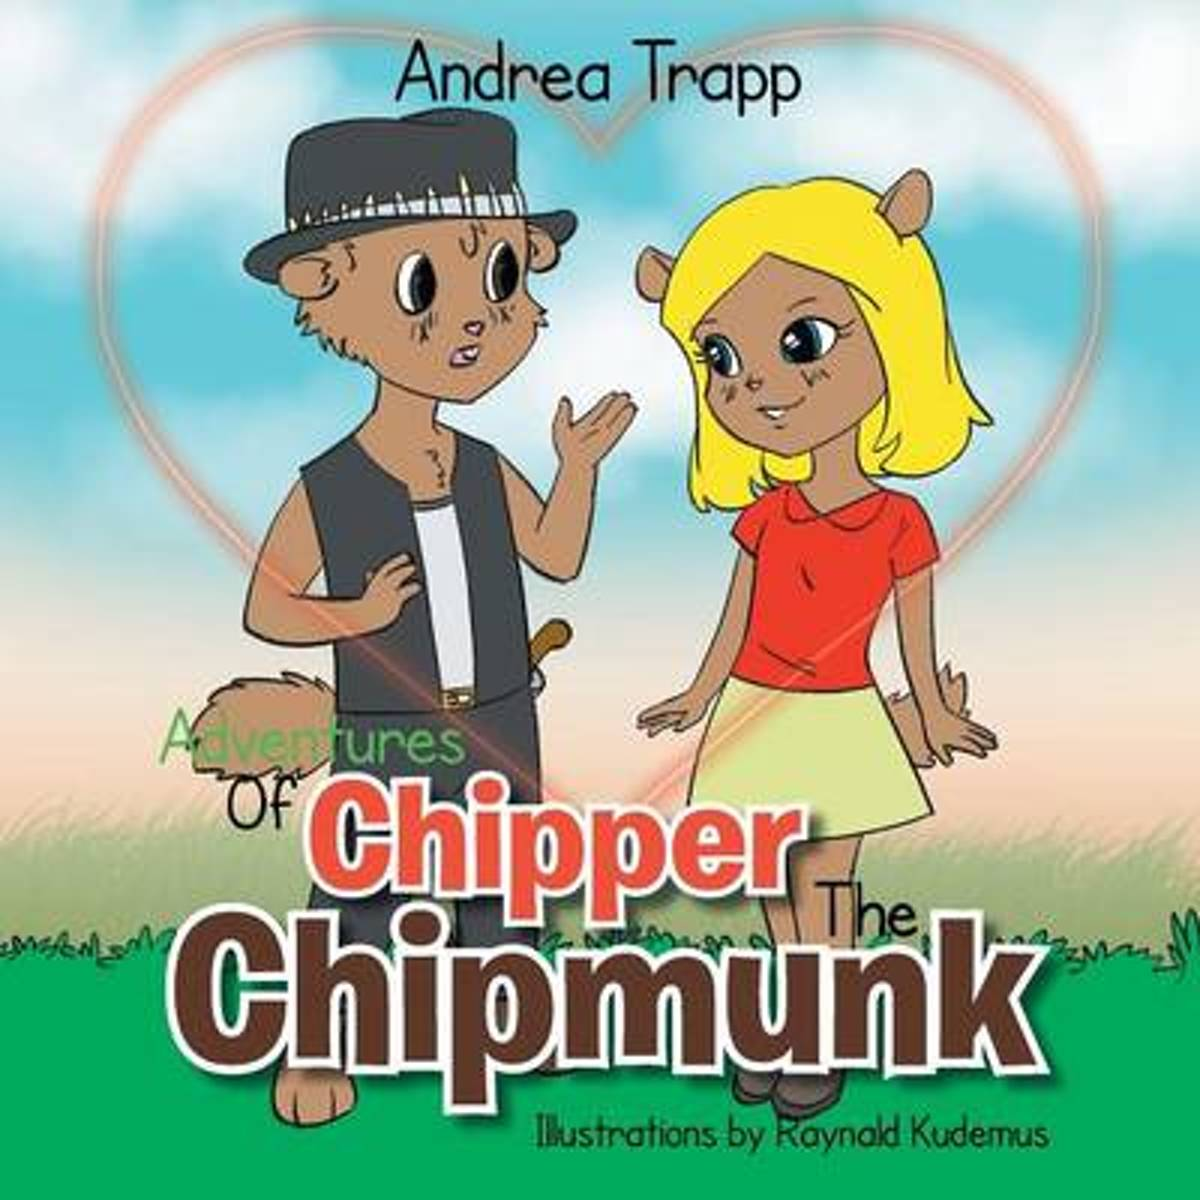 Adventures of Chipper the Chipmunk